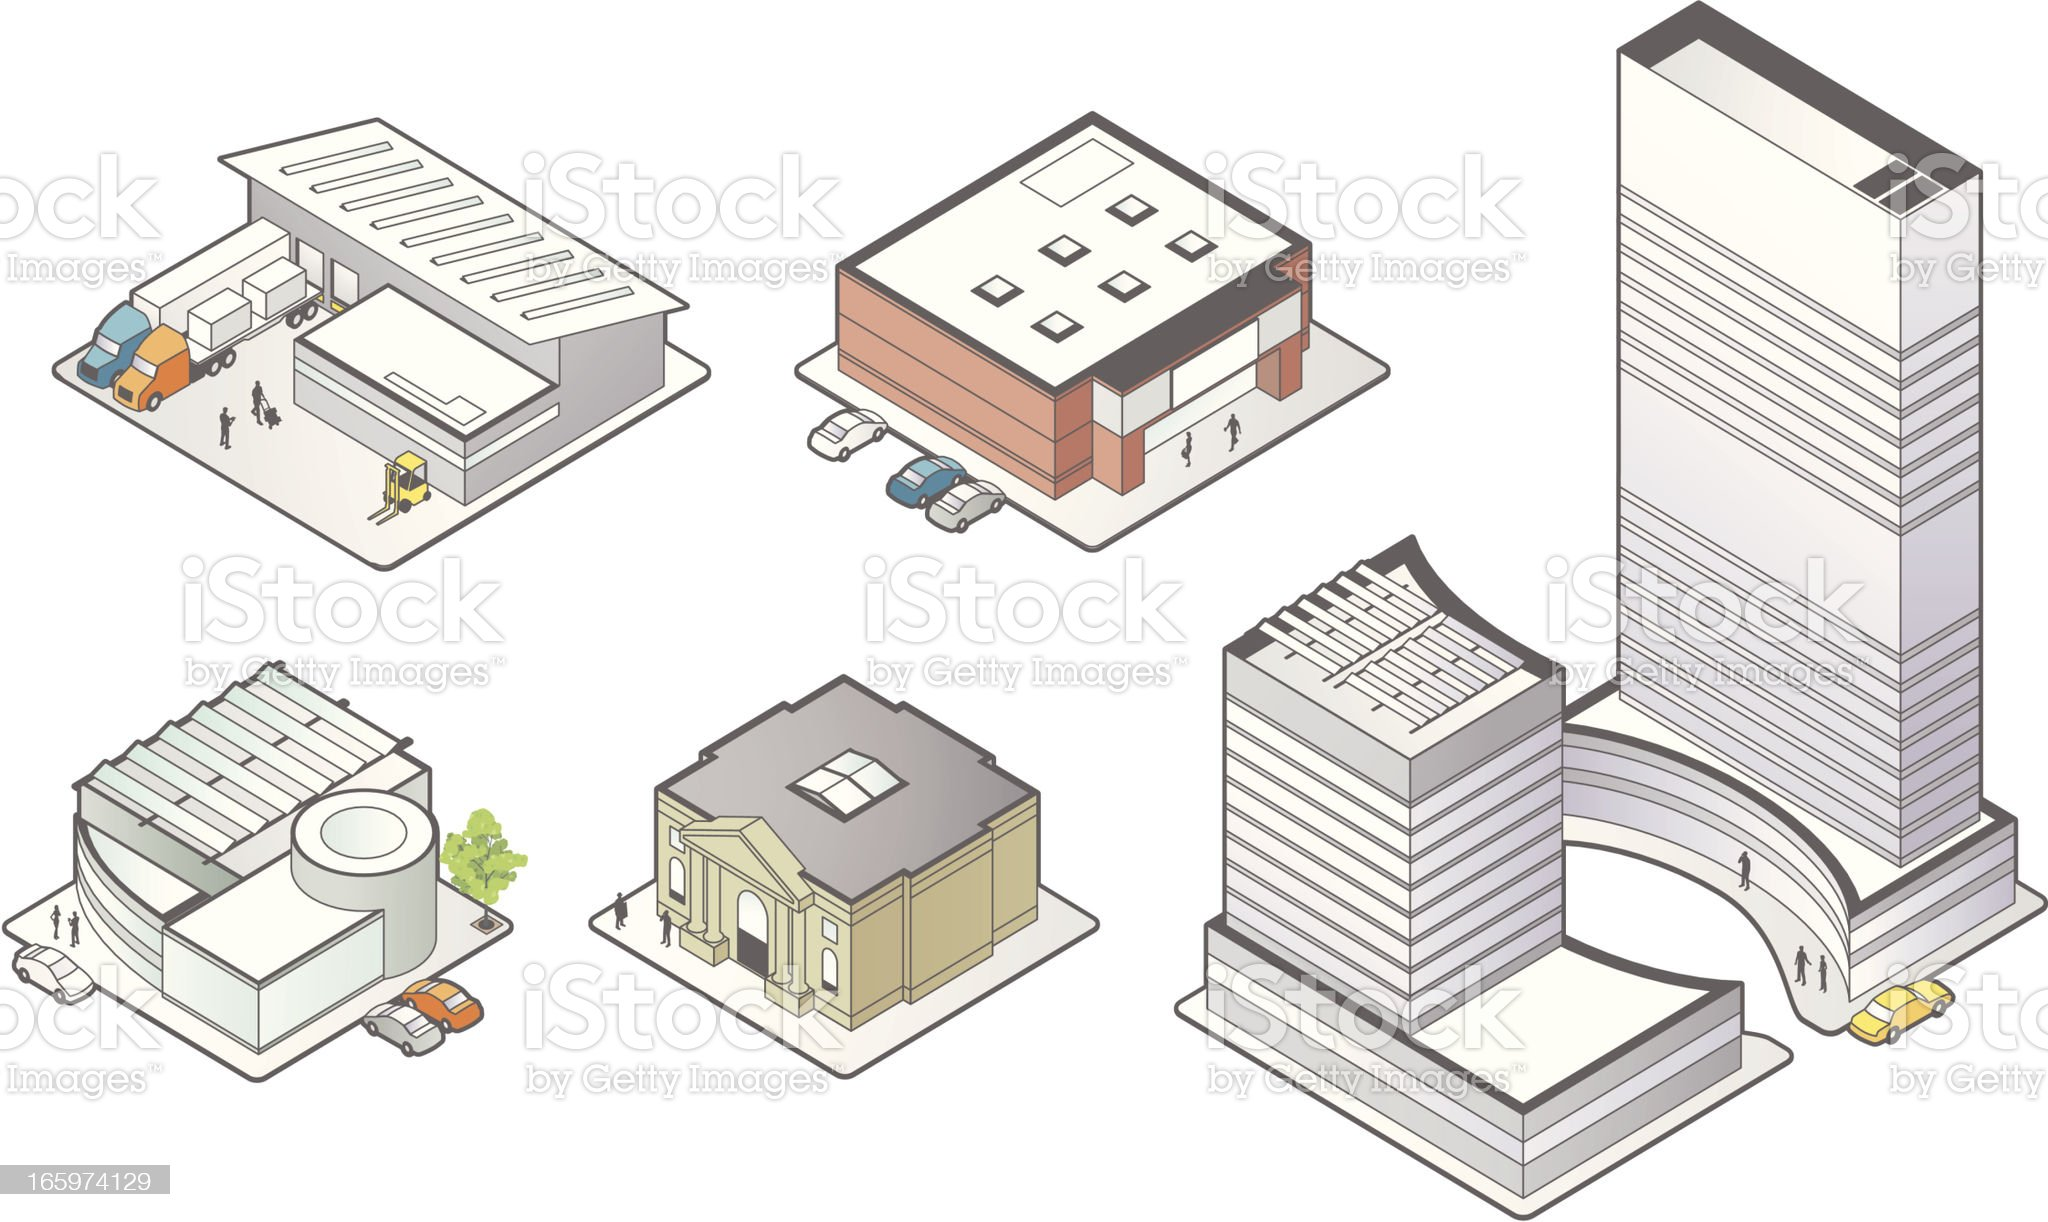 Business Building Icons royalty-free stock vector art